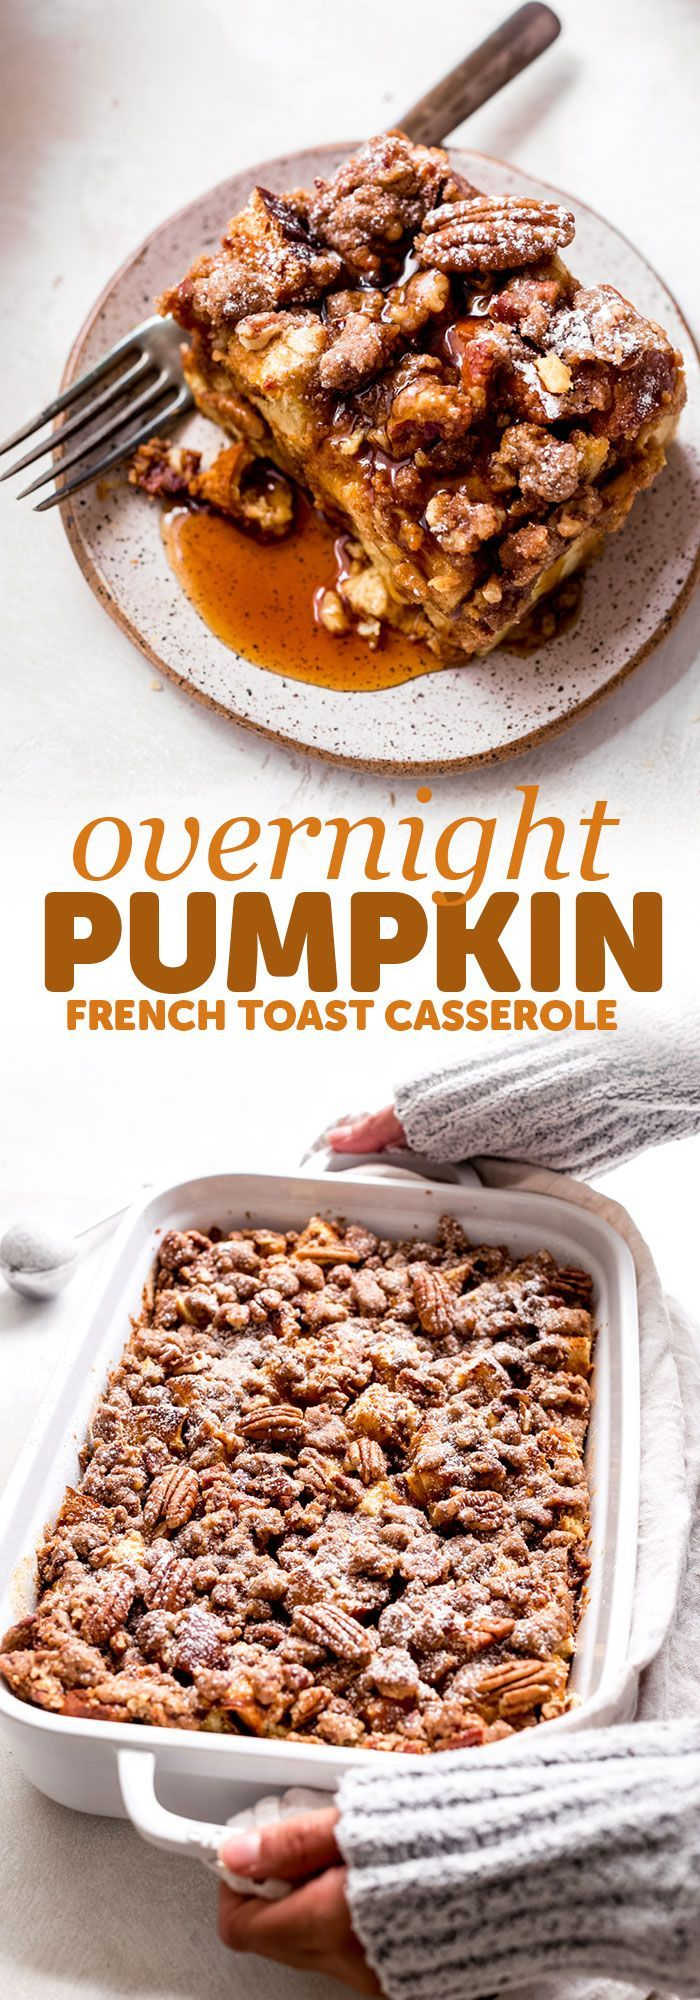 French Toast Casserole Pumpkin French Toast Casserole - This recipe is super friendly to make ahead of time and perfect for entertaining brunch guests of for Saturday morning breakfast! | Pumpkin French Toast Casserole - This recipe is super friendly to make ahead of time and perfect for entertaining bru...